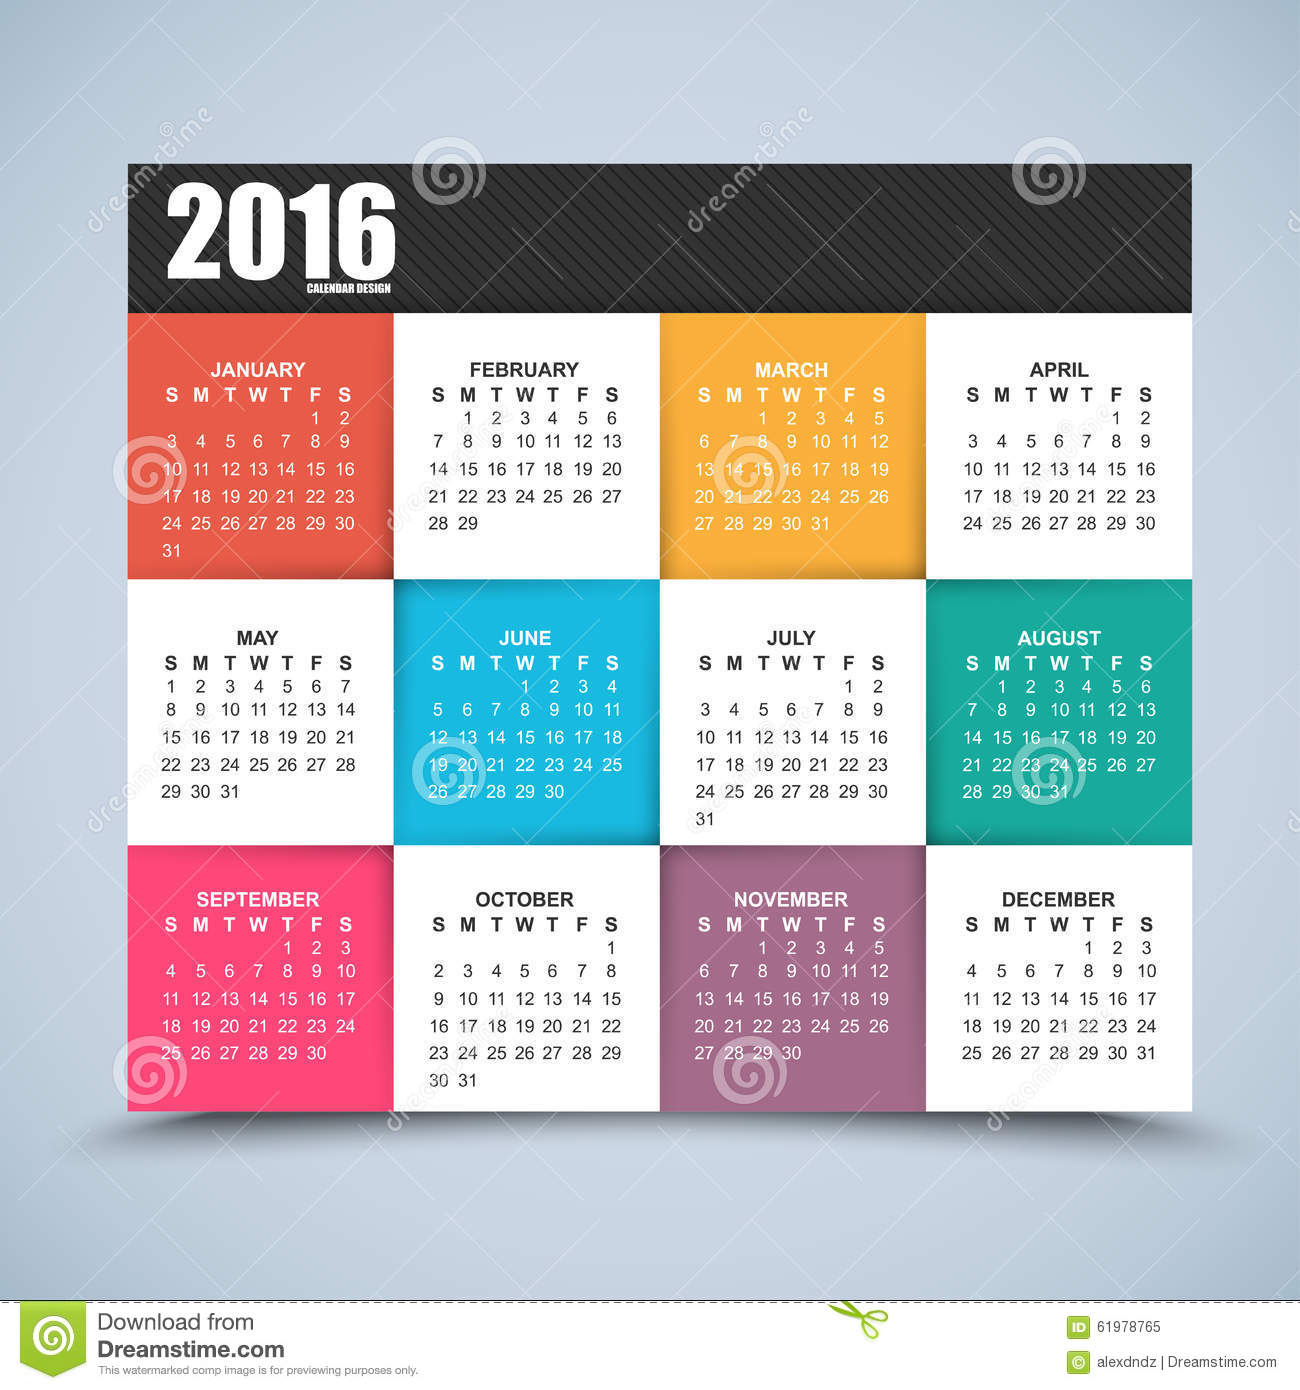 Calendar Design Pictures : Calendar design year stock vector image